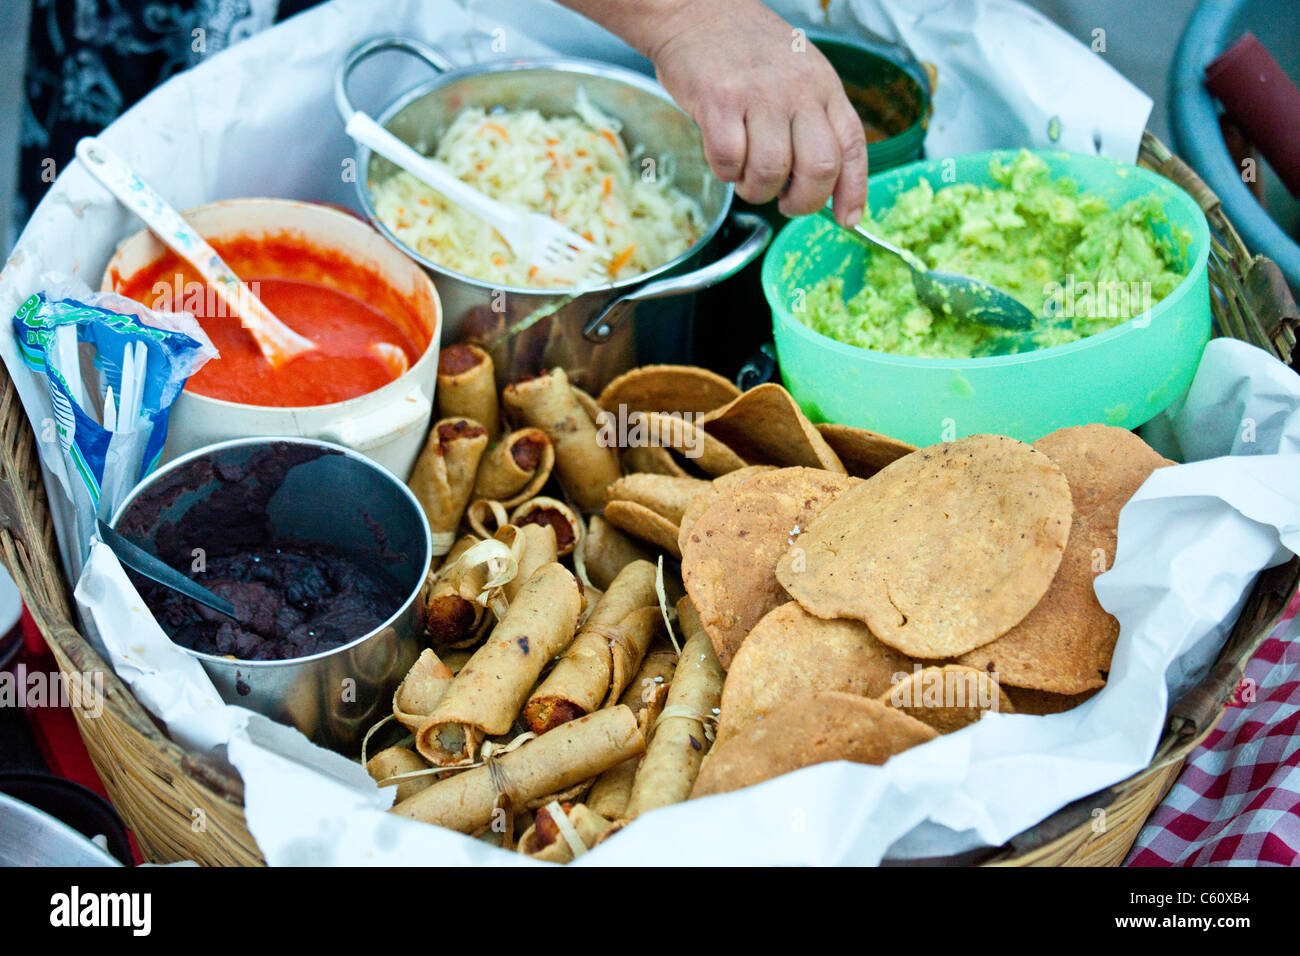 Street food antigua guatemala stock photo royalty free for Antiguan cuisine